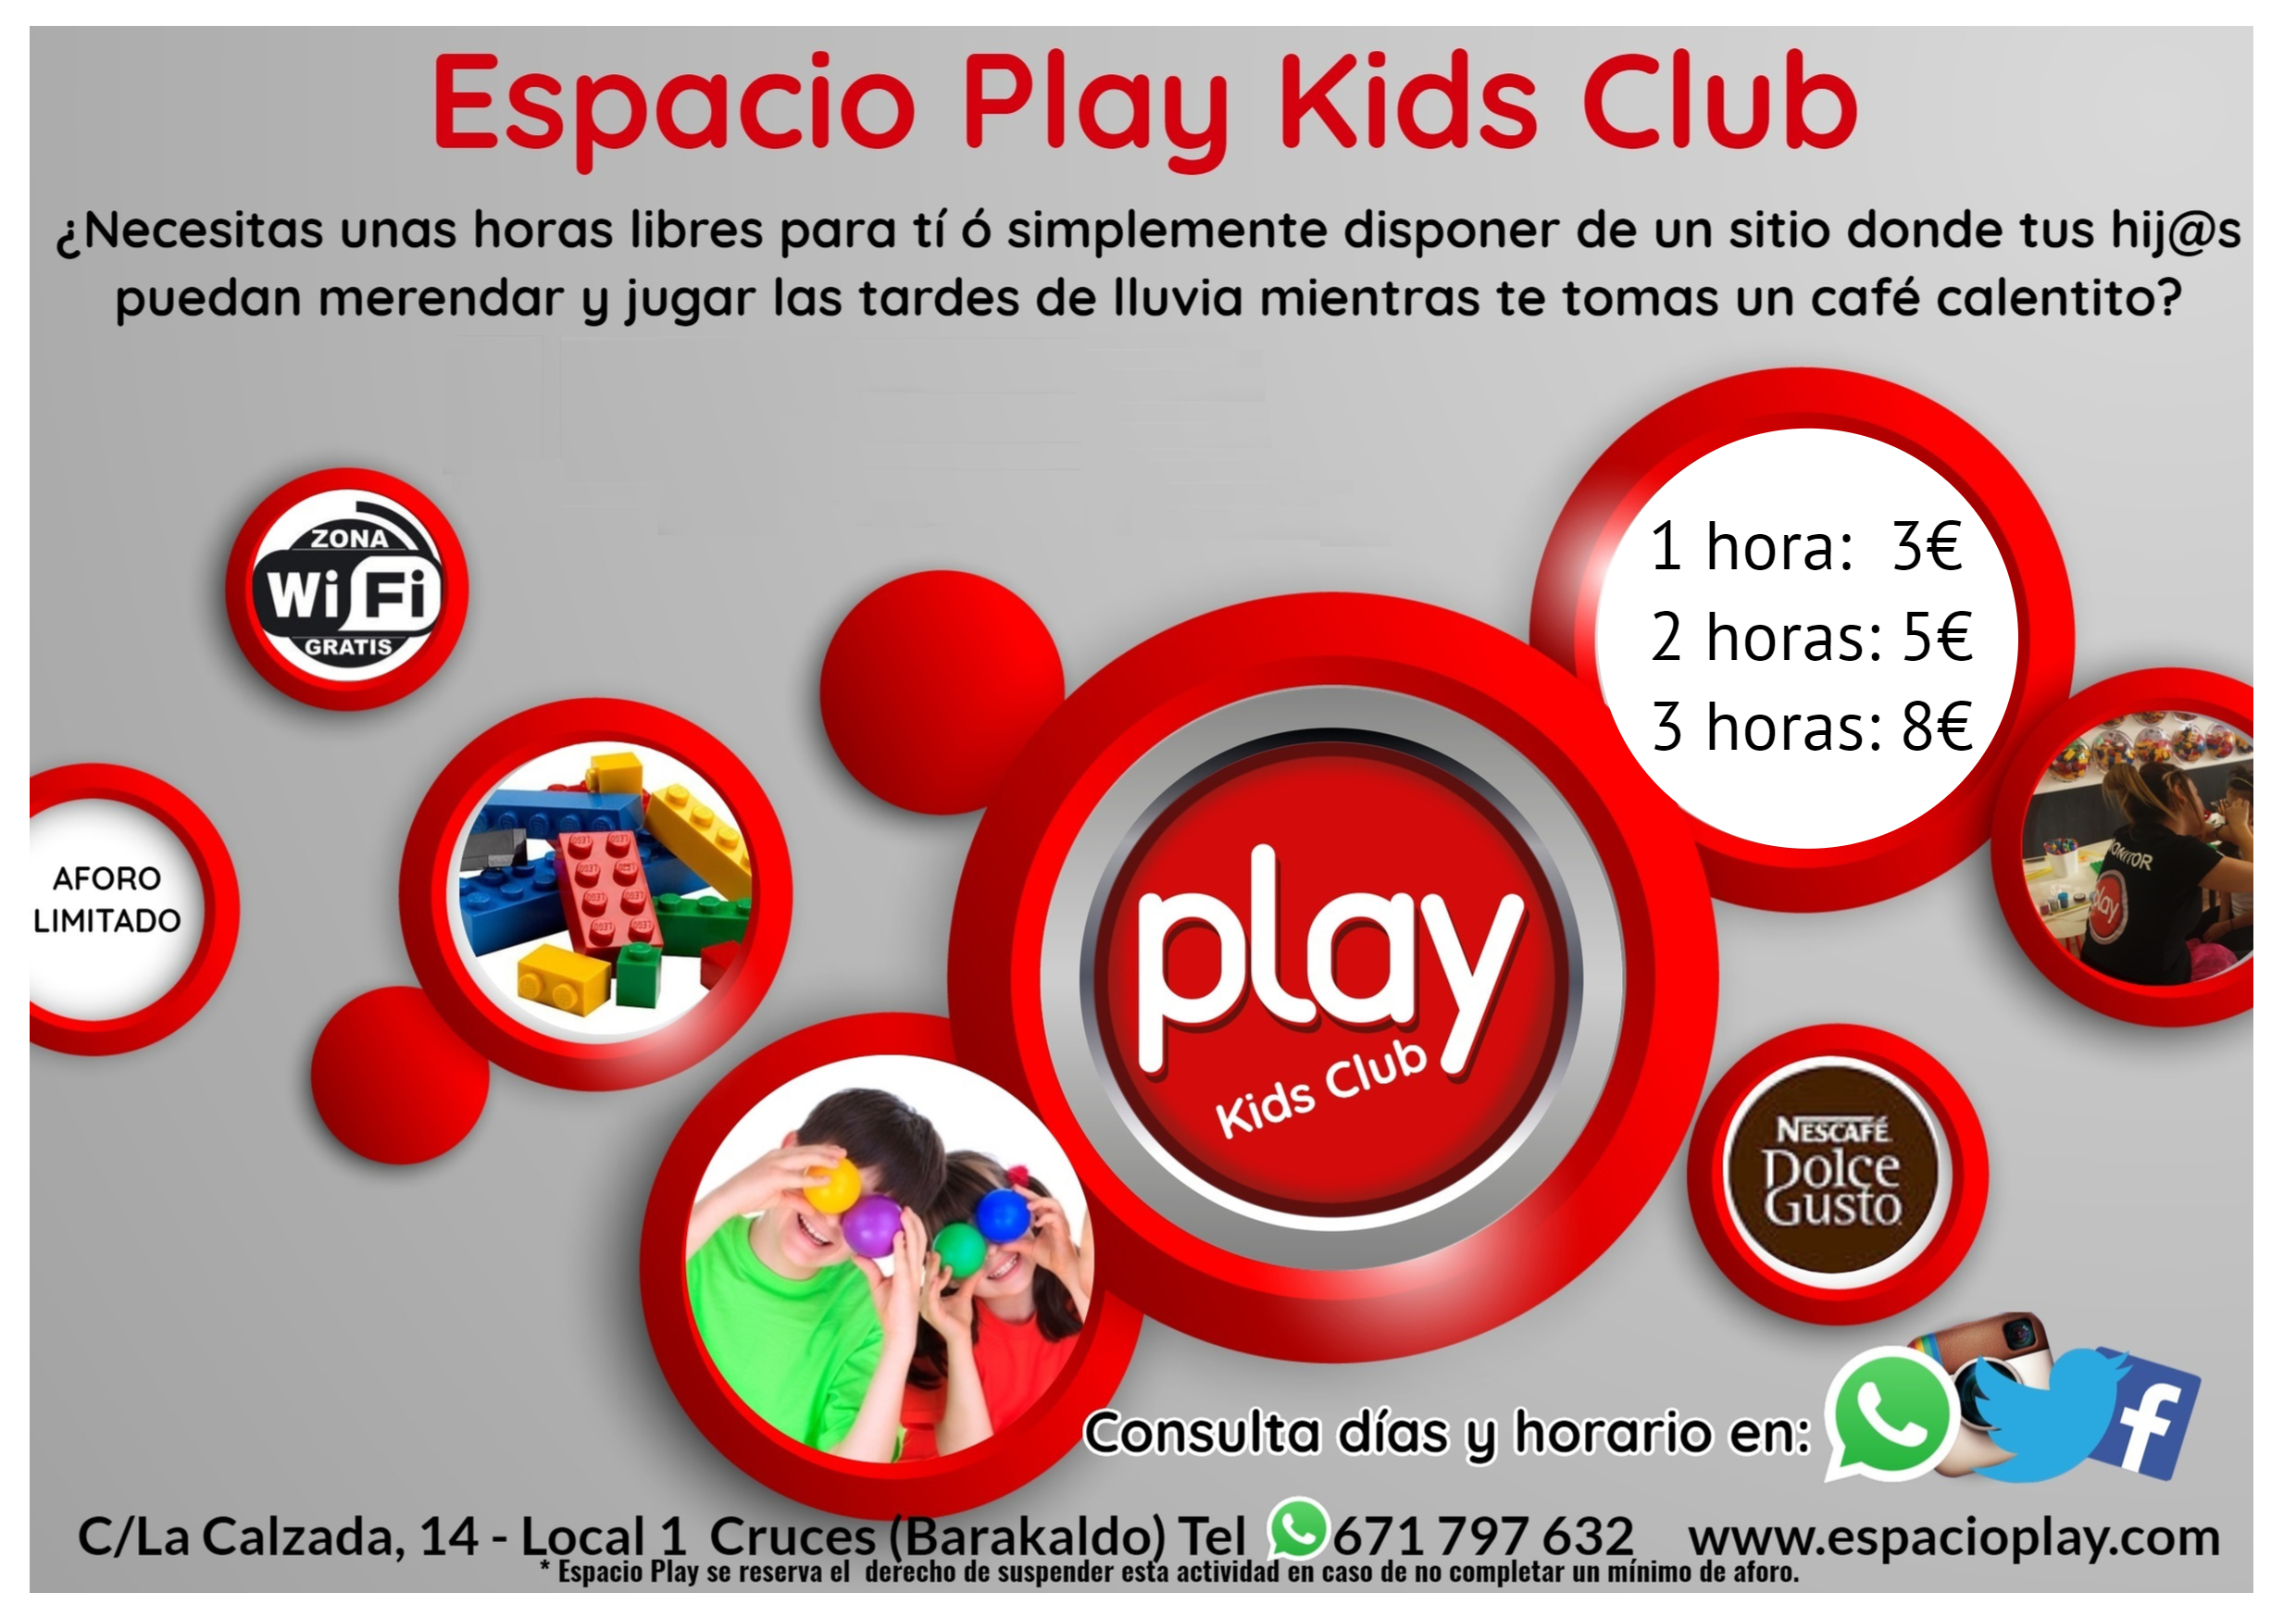 Espacio Play Kids Club